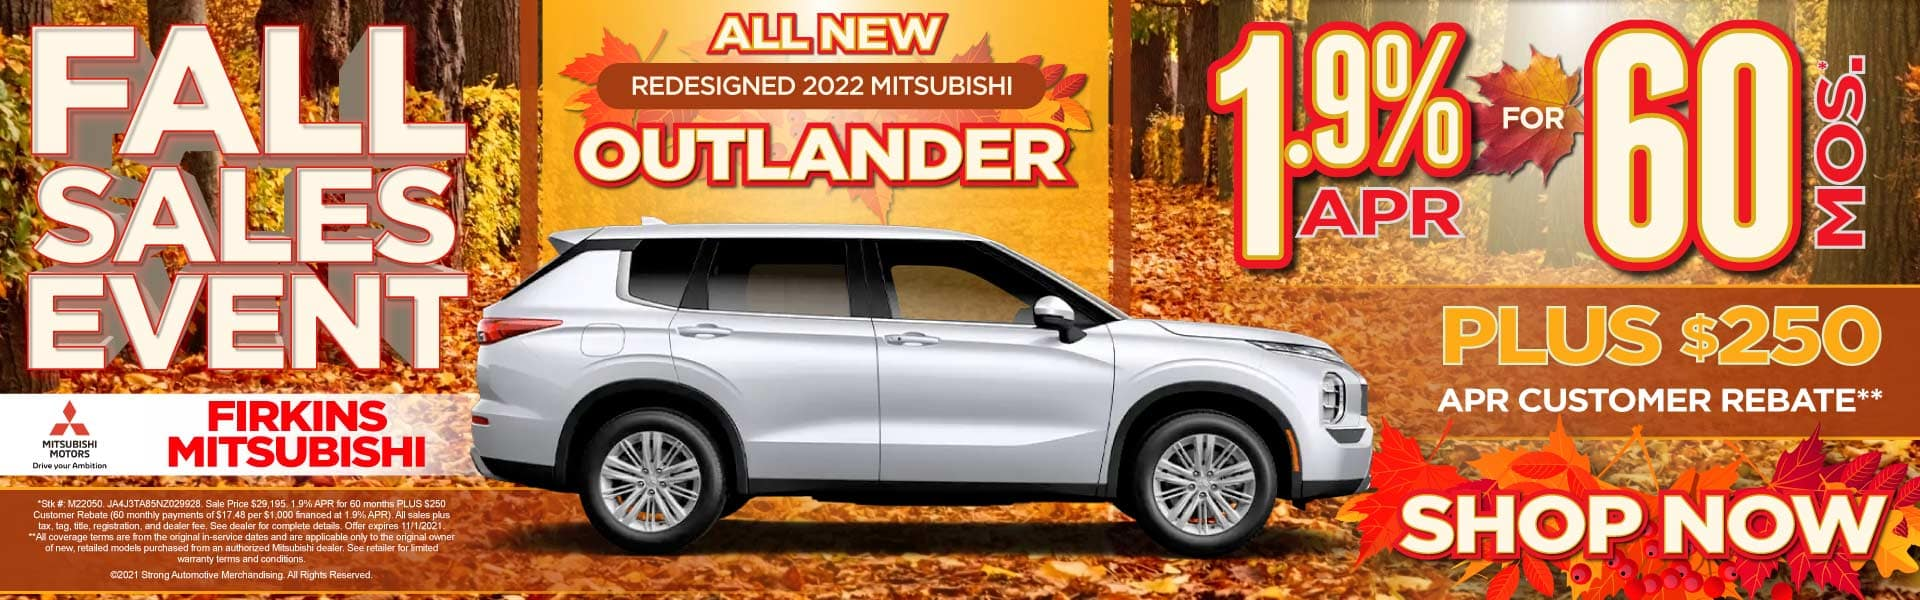 All New Redesigned 2022 Outlander – 1.9% APR for 60 mos* plus $250 APR Customer Rebate**